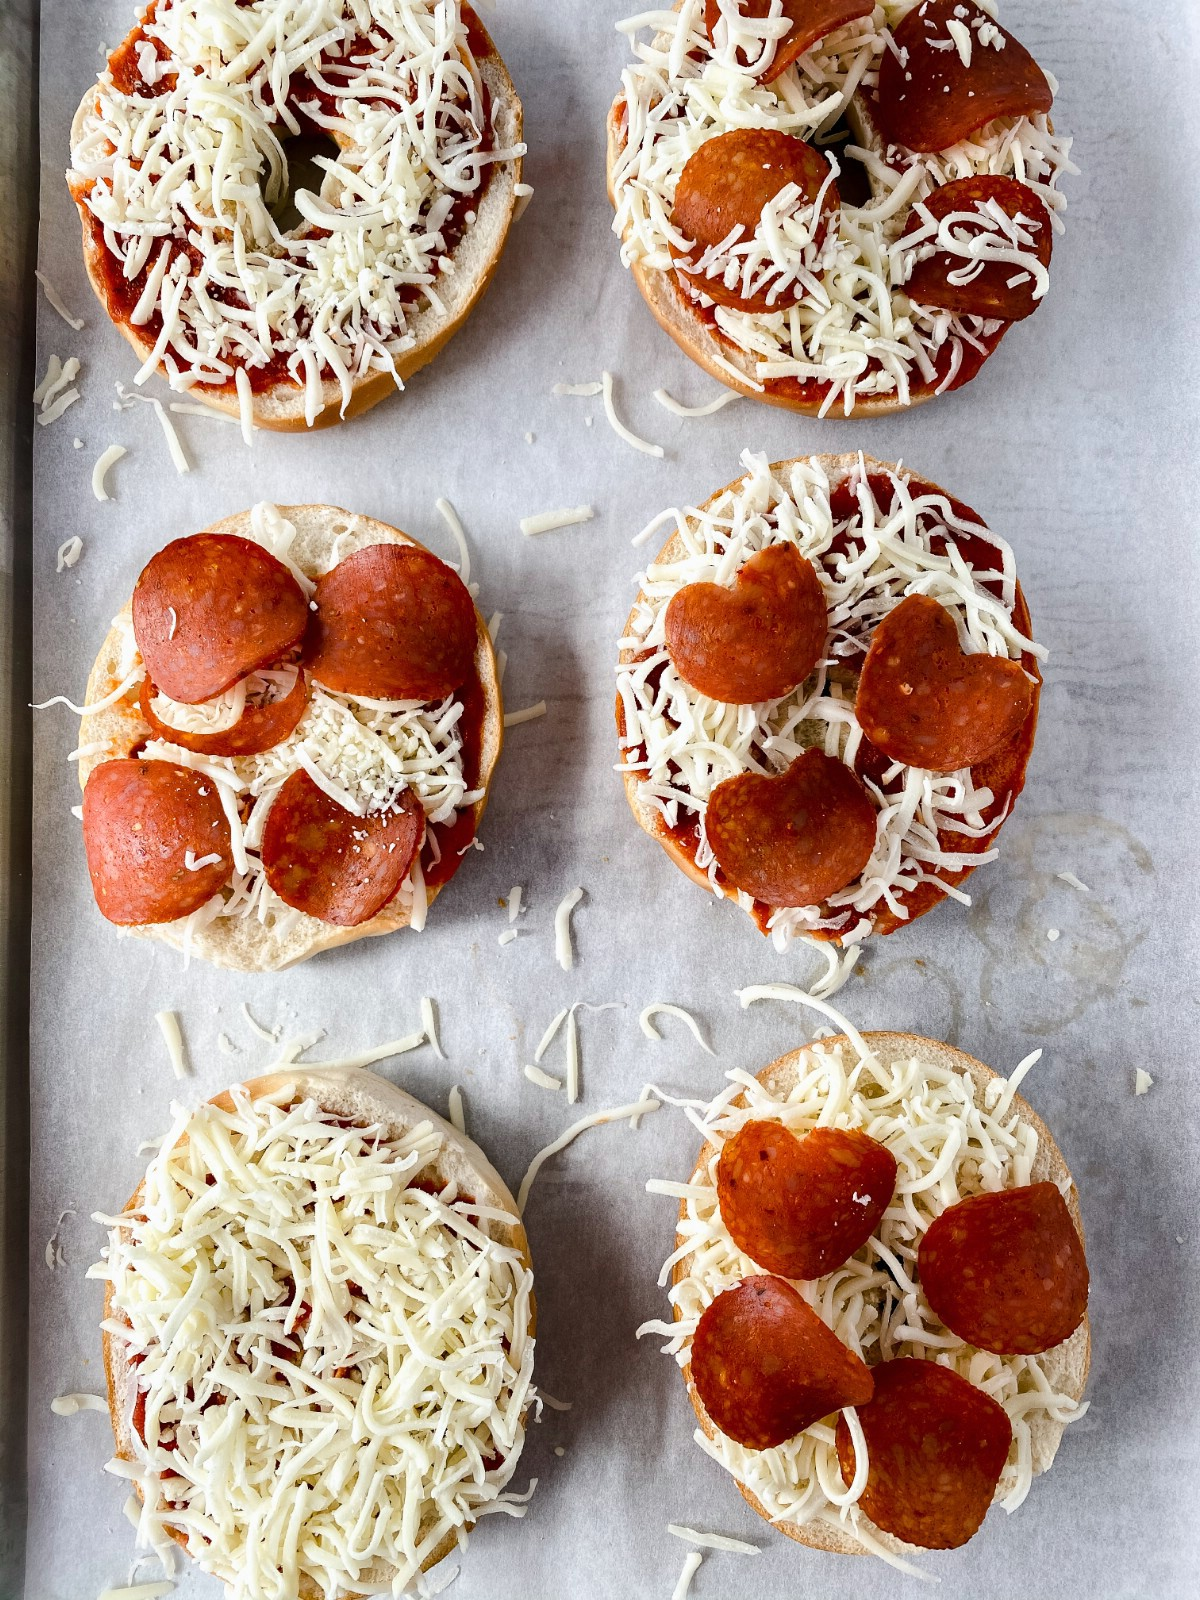 Pizza bagels topped with cheese and pepperoni unbaked